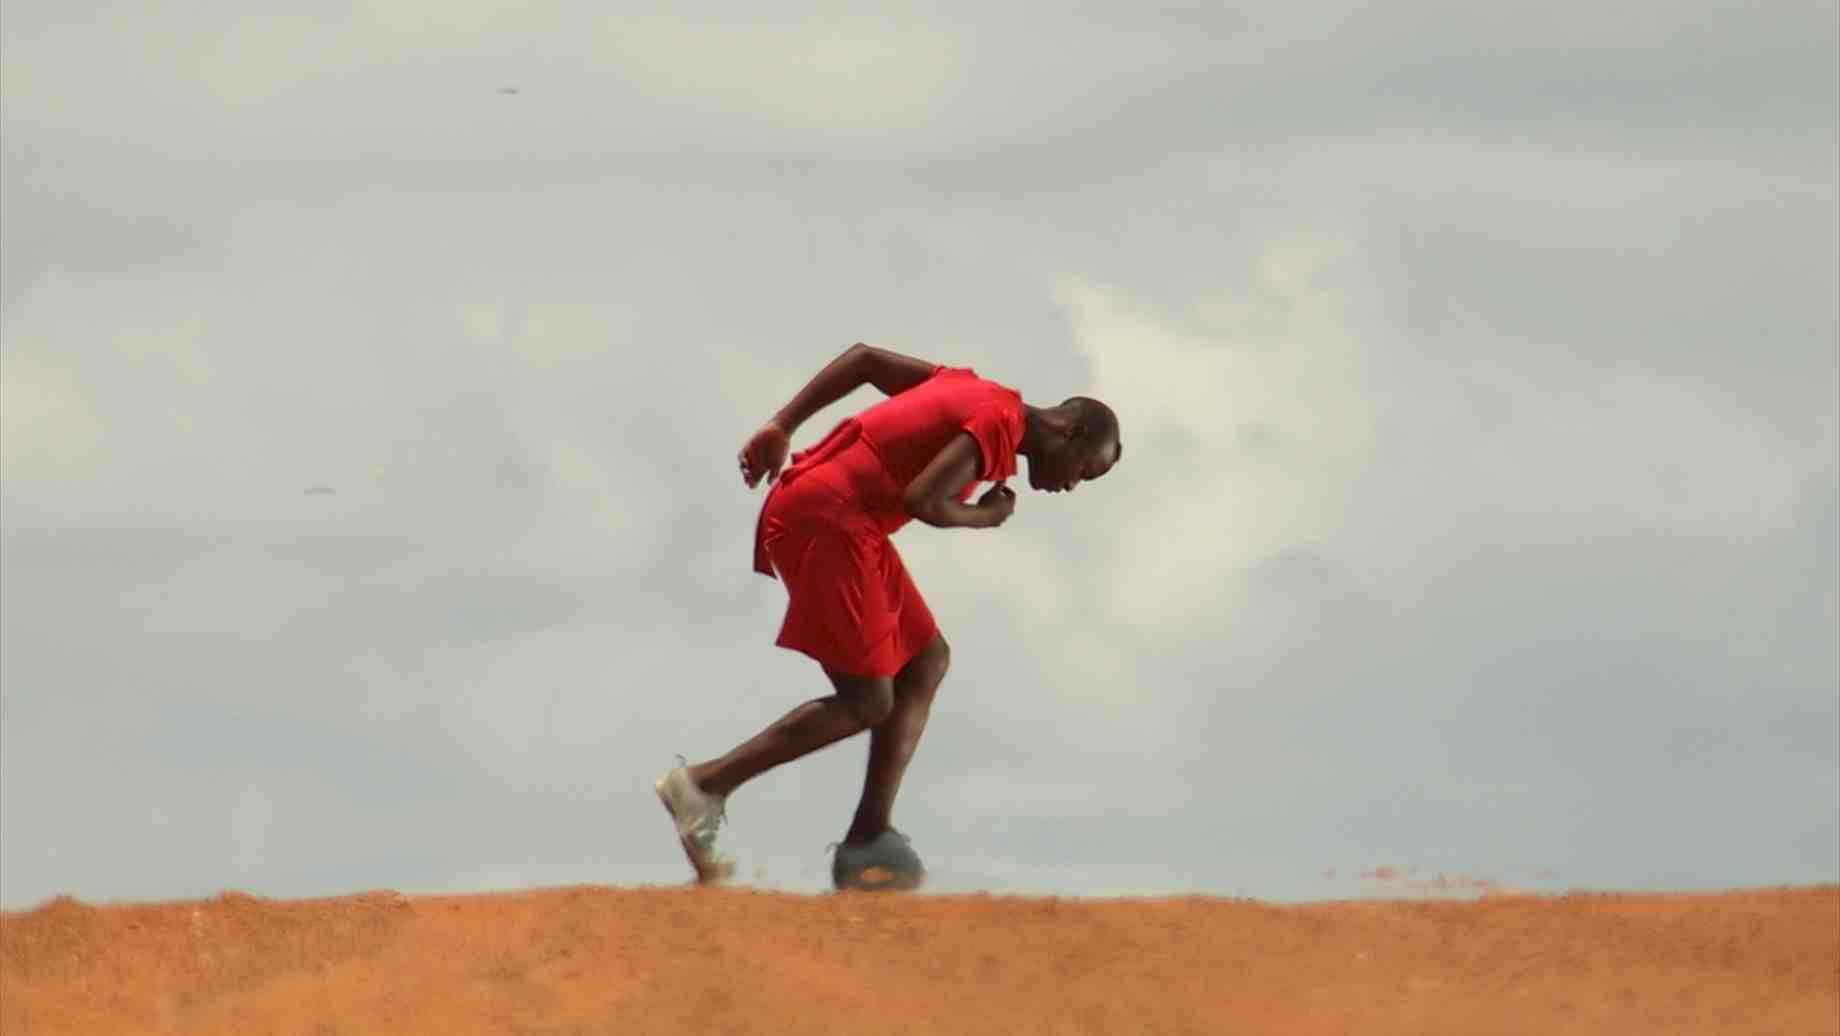 Nora Chipaumire returns to the red clay and vast sky of her Zimbabwean youth: the opening shot of NORA.